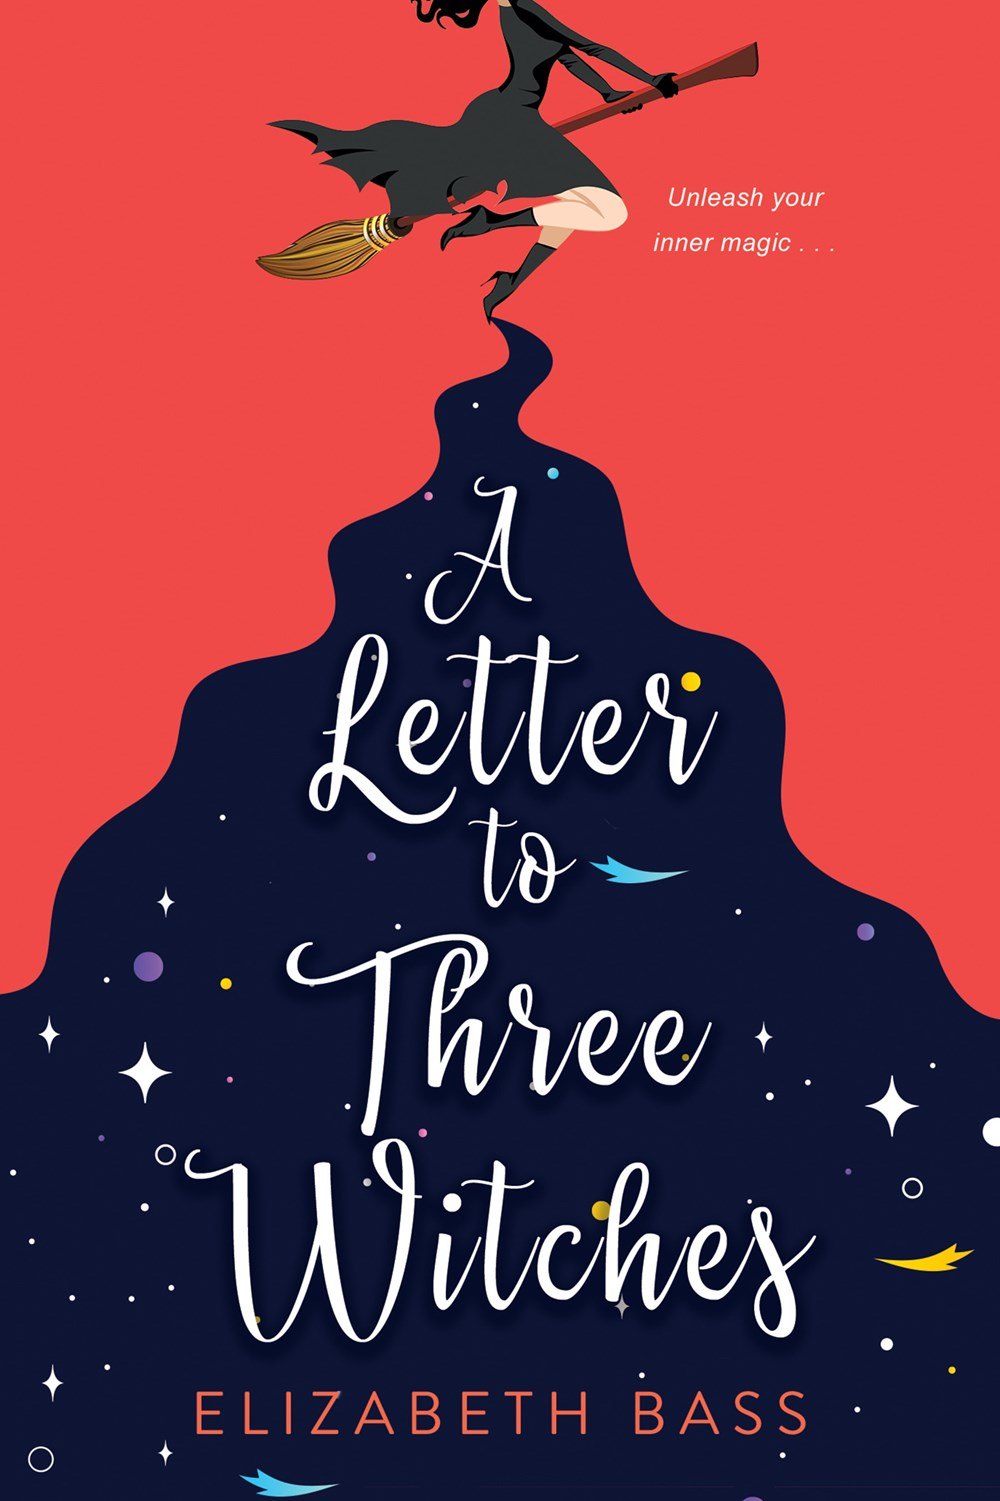 When Does A Letter To Three Witches Release? Elizabeth Bass 2022 New Book